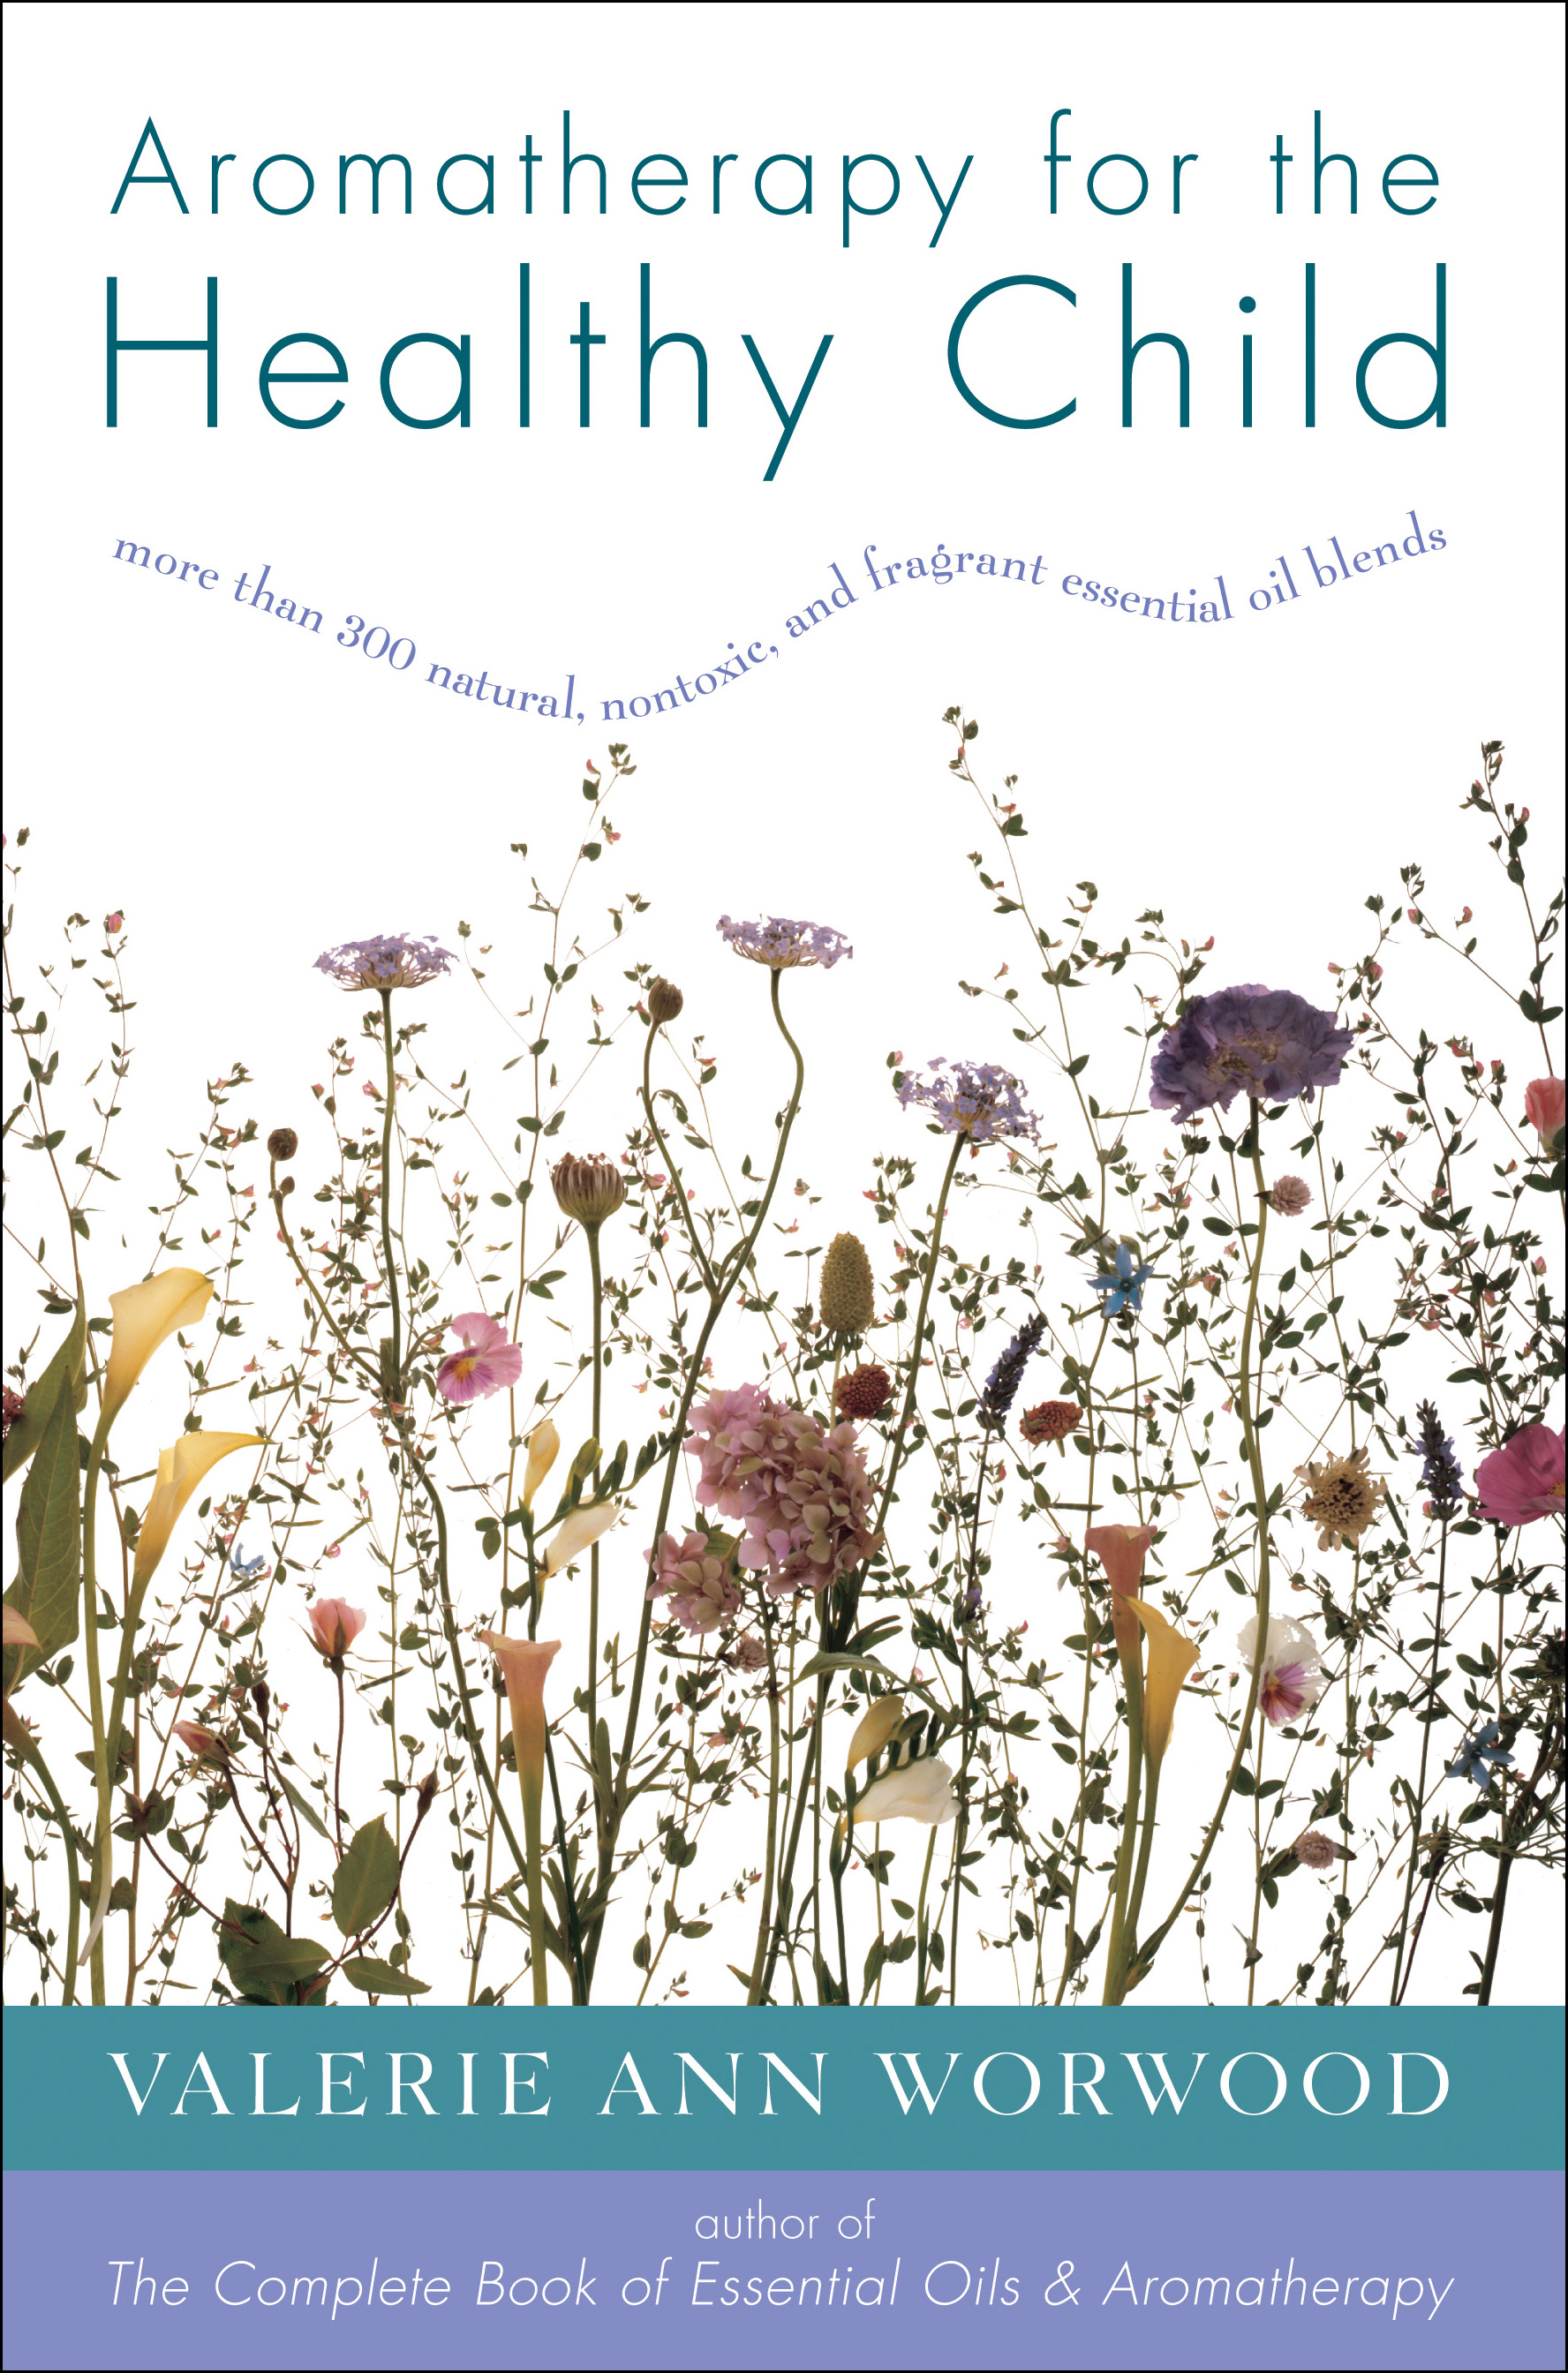 Aromatherapy for the Healthy Child by Valerie Ann Worwood - Read Online